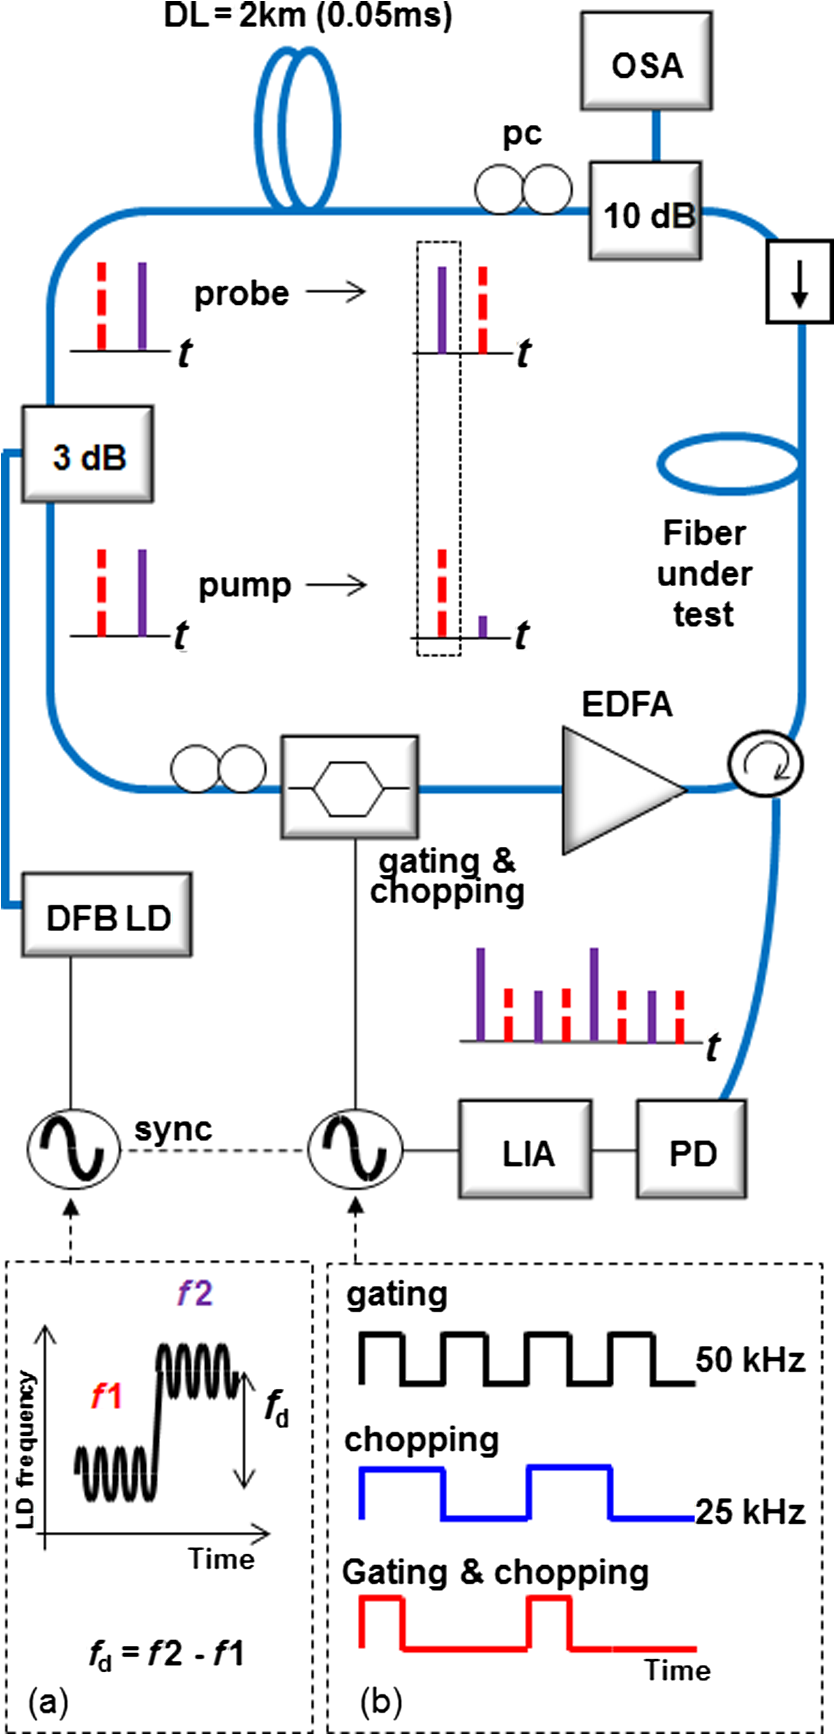 Brillouin Optical Correlation Analysis System Using A Simplified Amplifiers And Lockin Schematic All Distributed Feedback Laser Diode Dfb Ld Lock In Amplifier Lia Spectrum Analyzer Osa